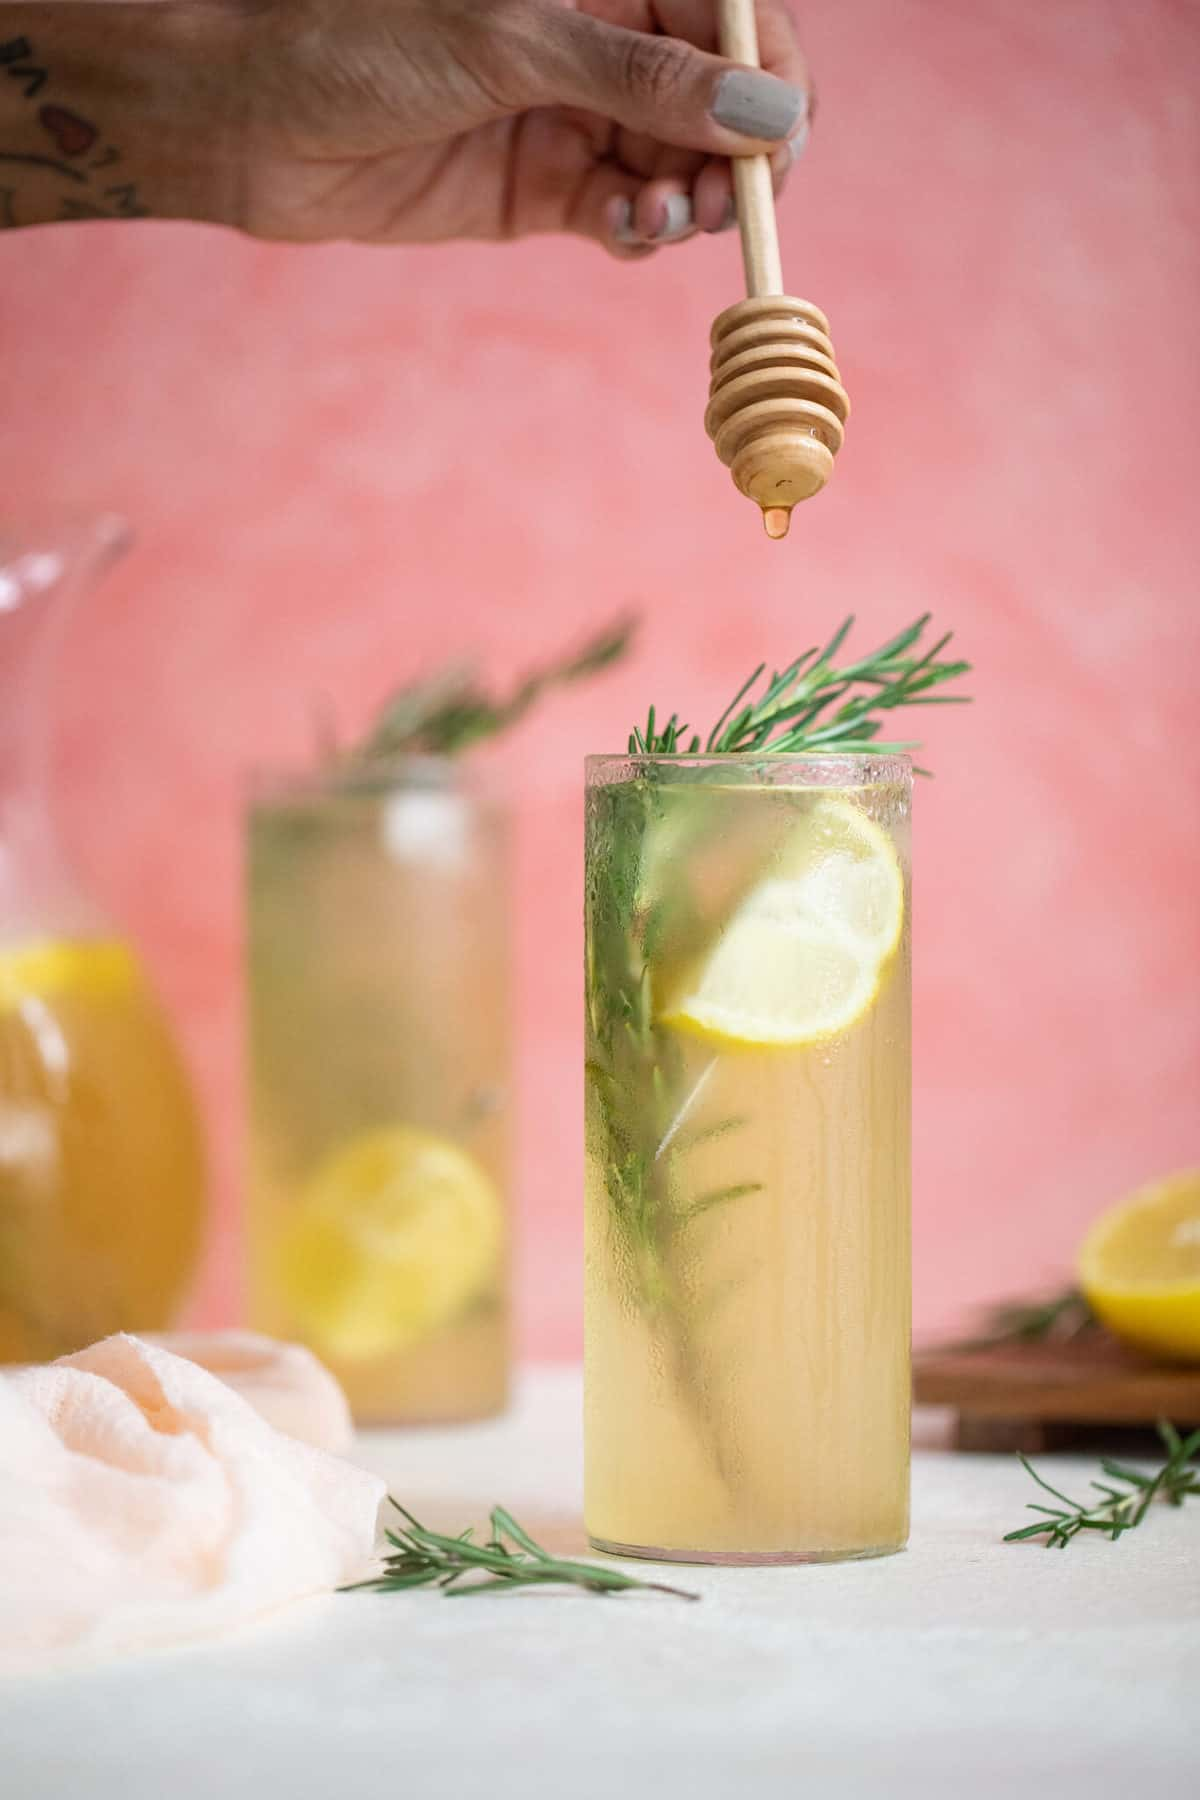 Apple Cider Vinegar Detox Lemonade